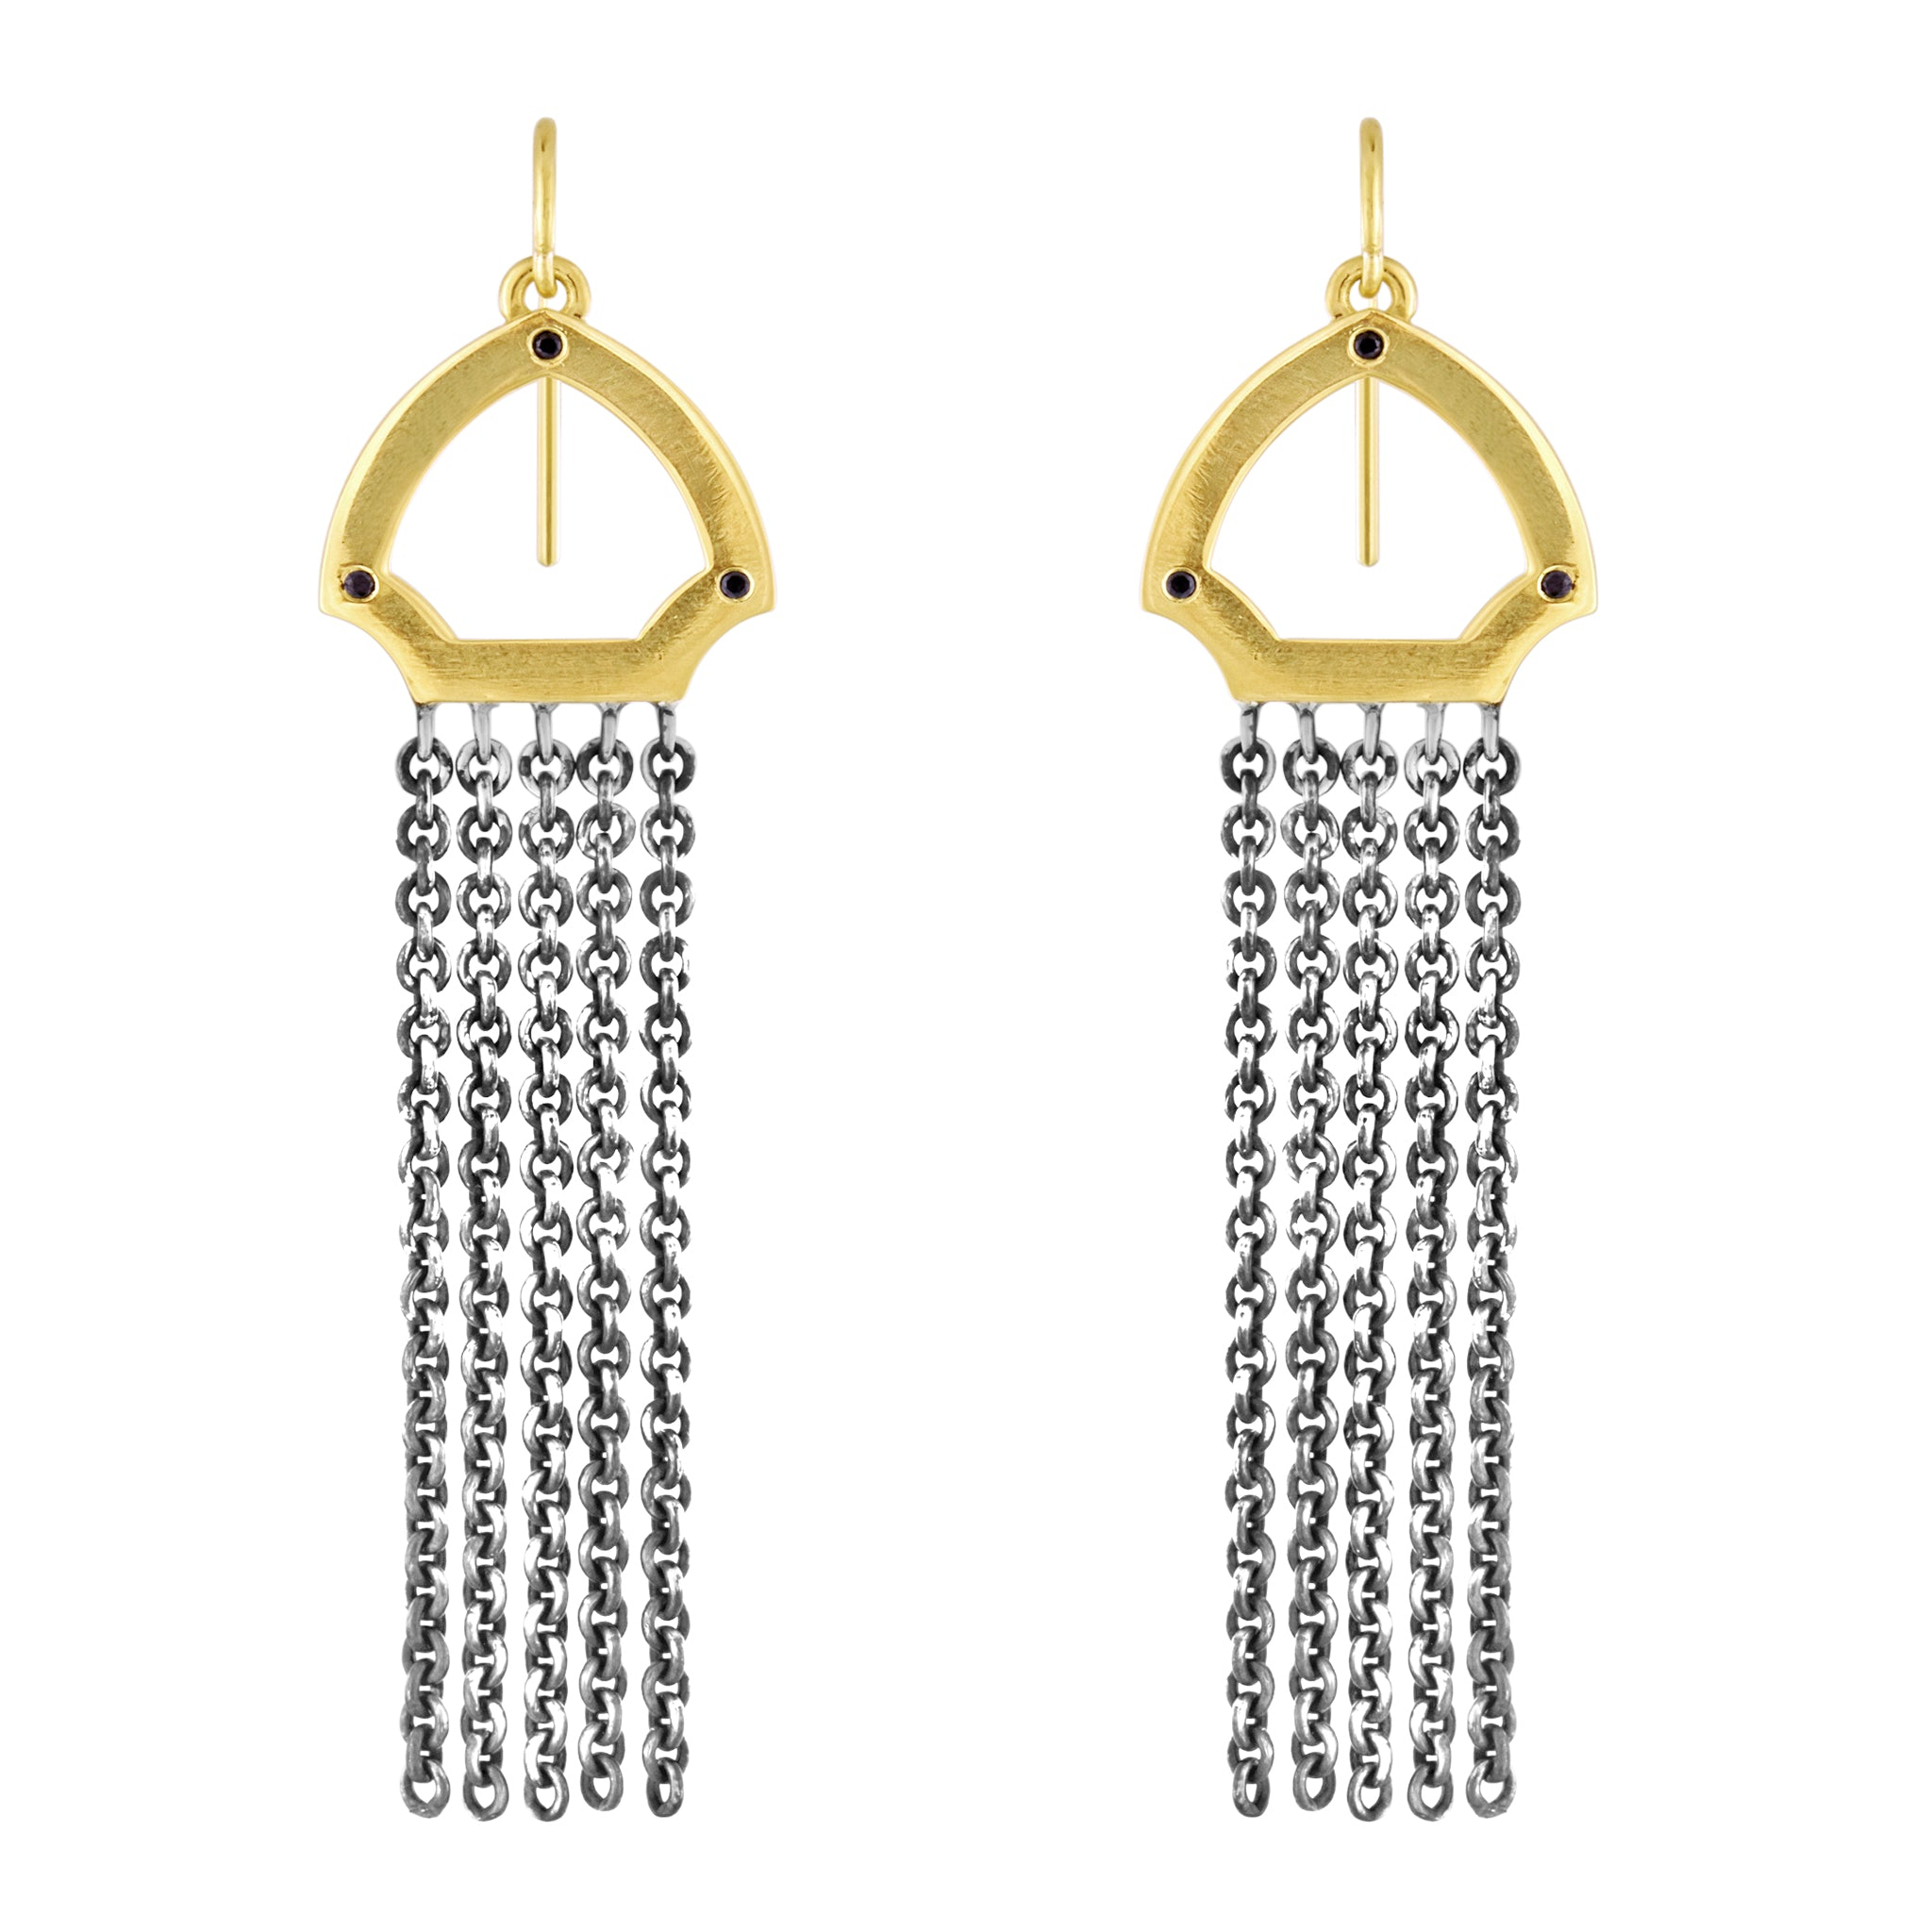 Hook Earrings: 14k Gold, Oxidized Silver, Black Diamonds